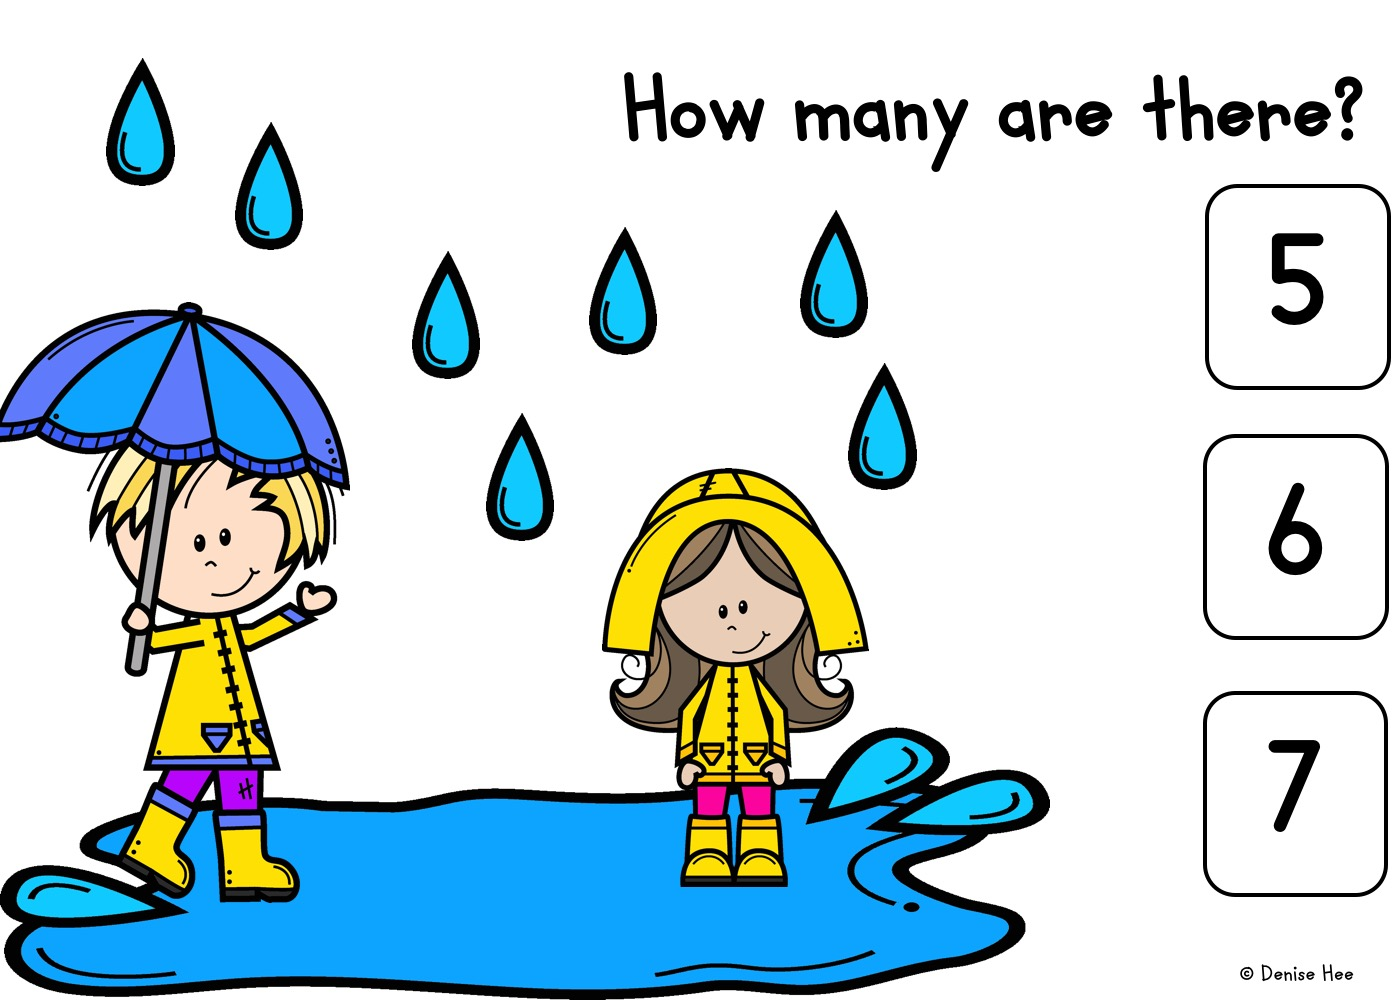 Count The Raindrops 1-10   Free Printable Worksheets For Kids   Count how many raindrops are forming those fun puddles in this spring-themed game. Kids will practice counting from 1 to 10 while strengthening fine motor muscles with this set of clipcards.